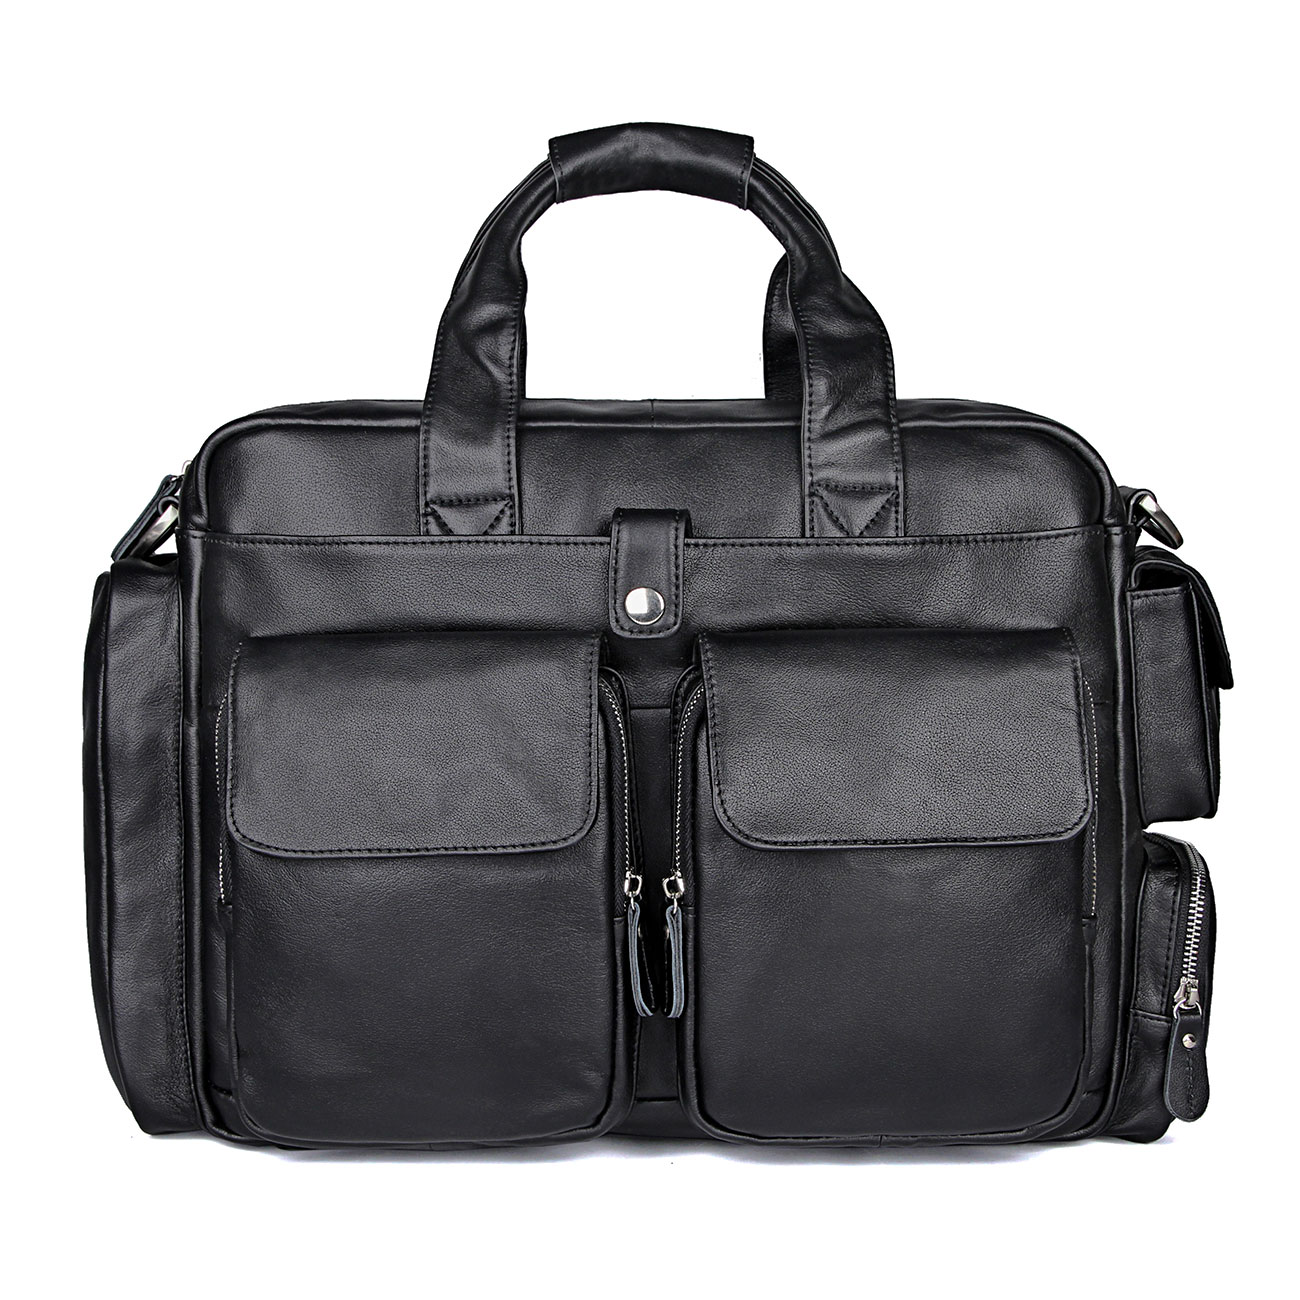 17″ Men's Briefcase Laptop Bag Black Genuine Leather Male Travel Business Fashion Hand Casual Tote Shoulder Bags Cow Leather